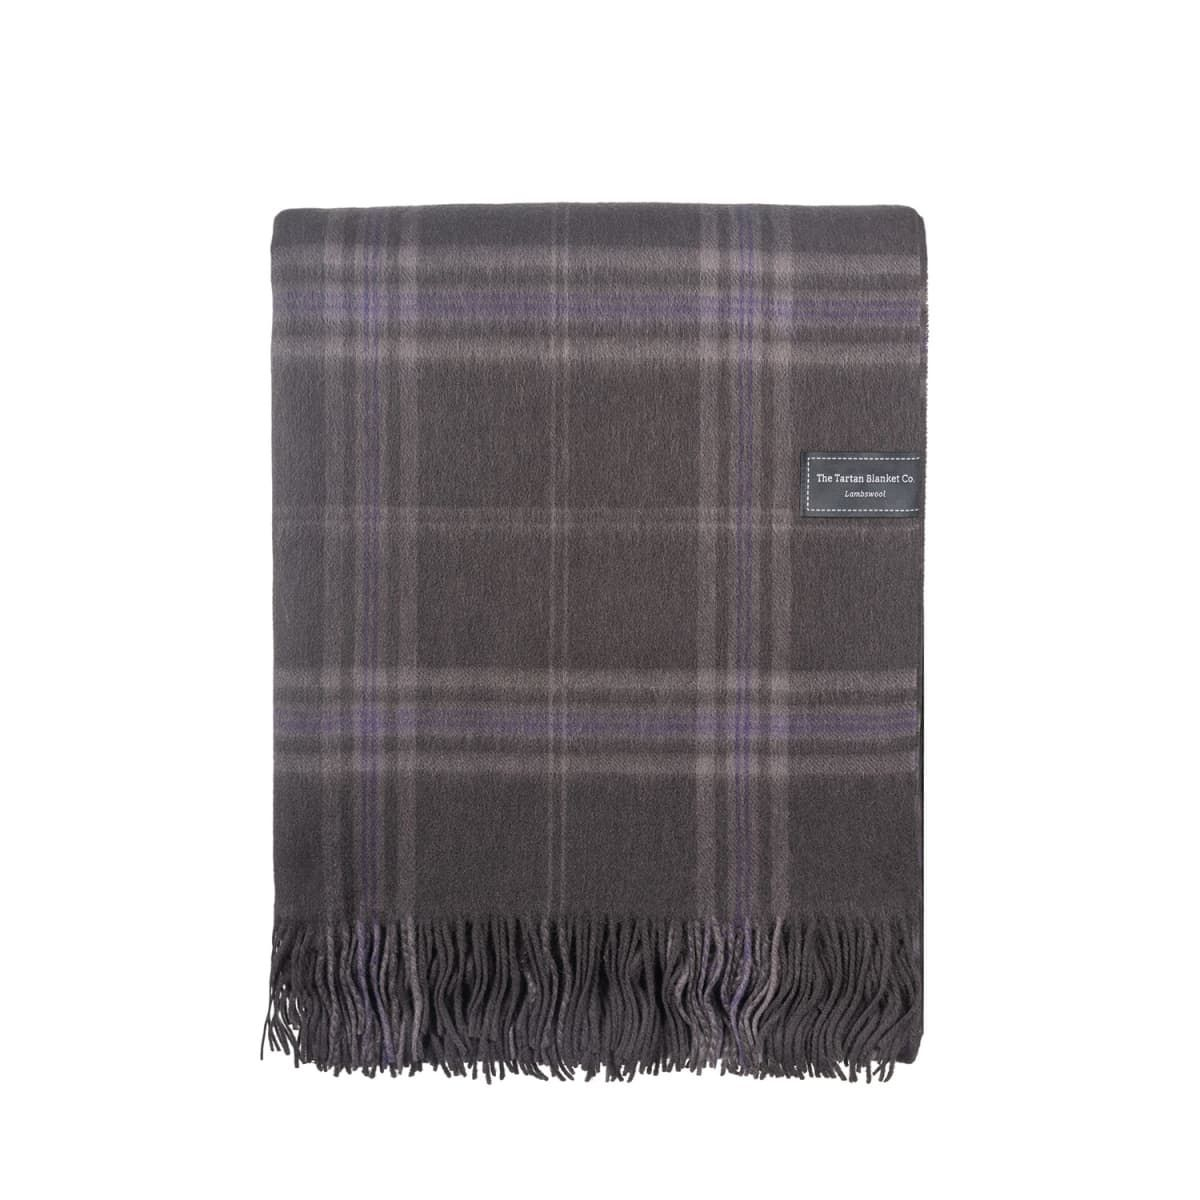 Lambswool Blanket In Persevere Flint Grey Tartan